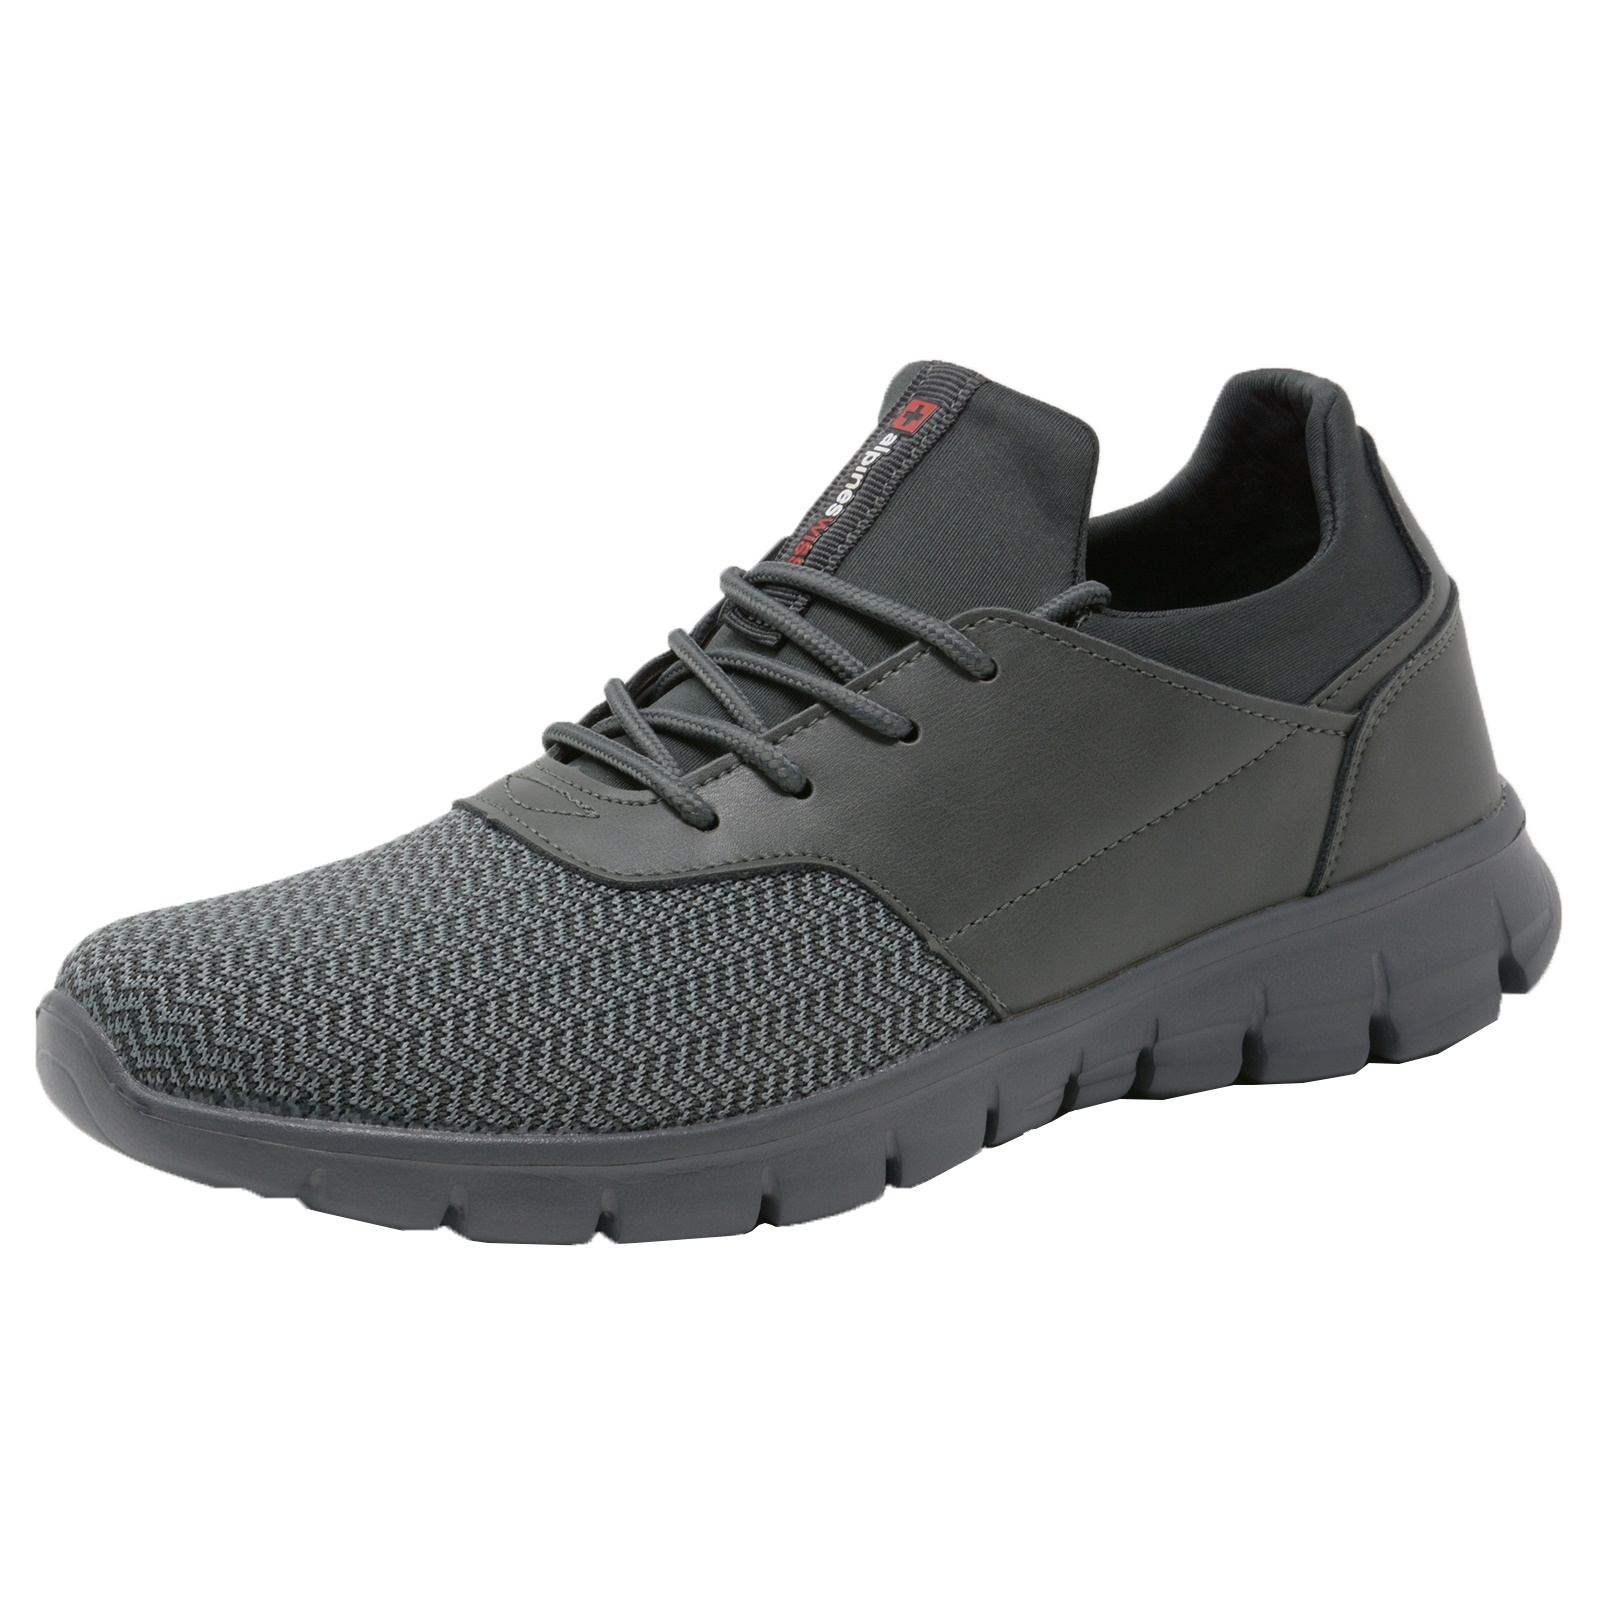 Alpine-Swiss-Leo-Men-Sneakers-Flex-Knit-Tennis-Shoes-Casual-Athletic-Lightweight thumbnail 20